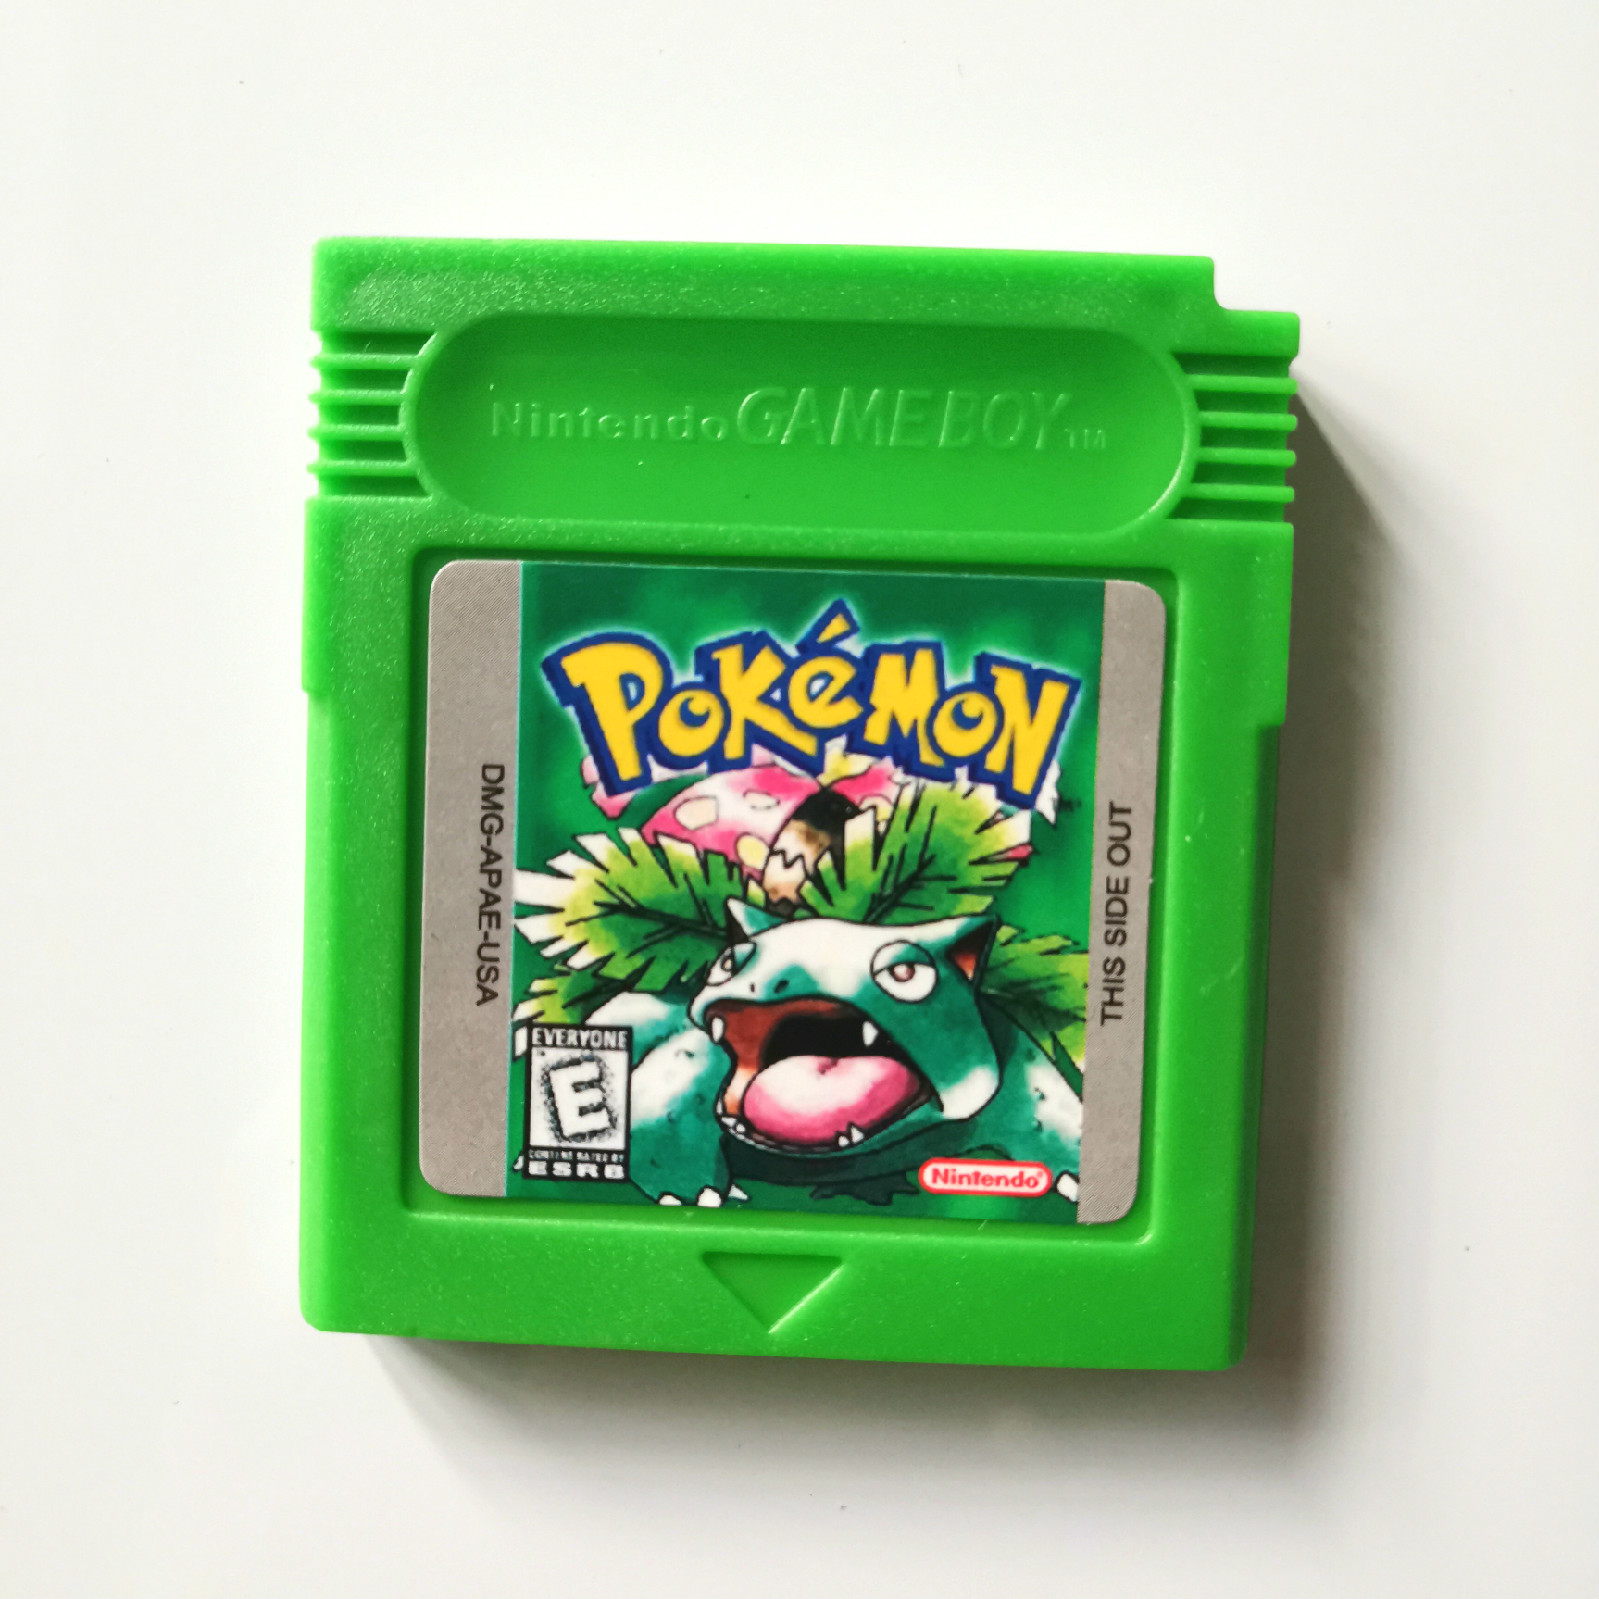 Pokemon GBC Games  Series 16 Bit Video Game Cartridge Console Card Classic Game Collect Colorful Version English Language 5